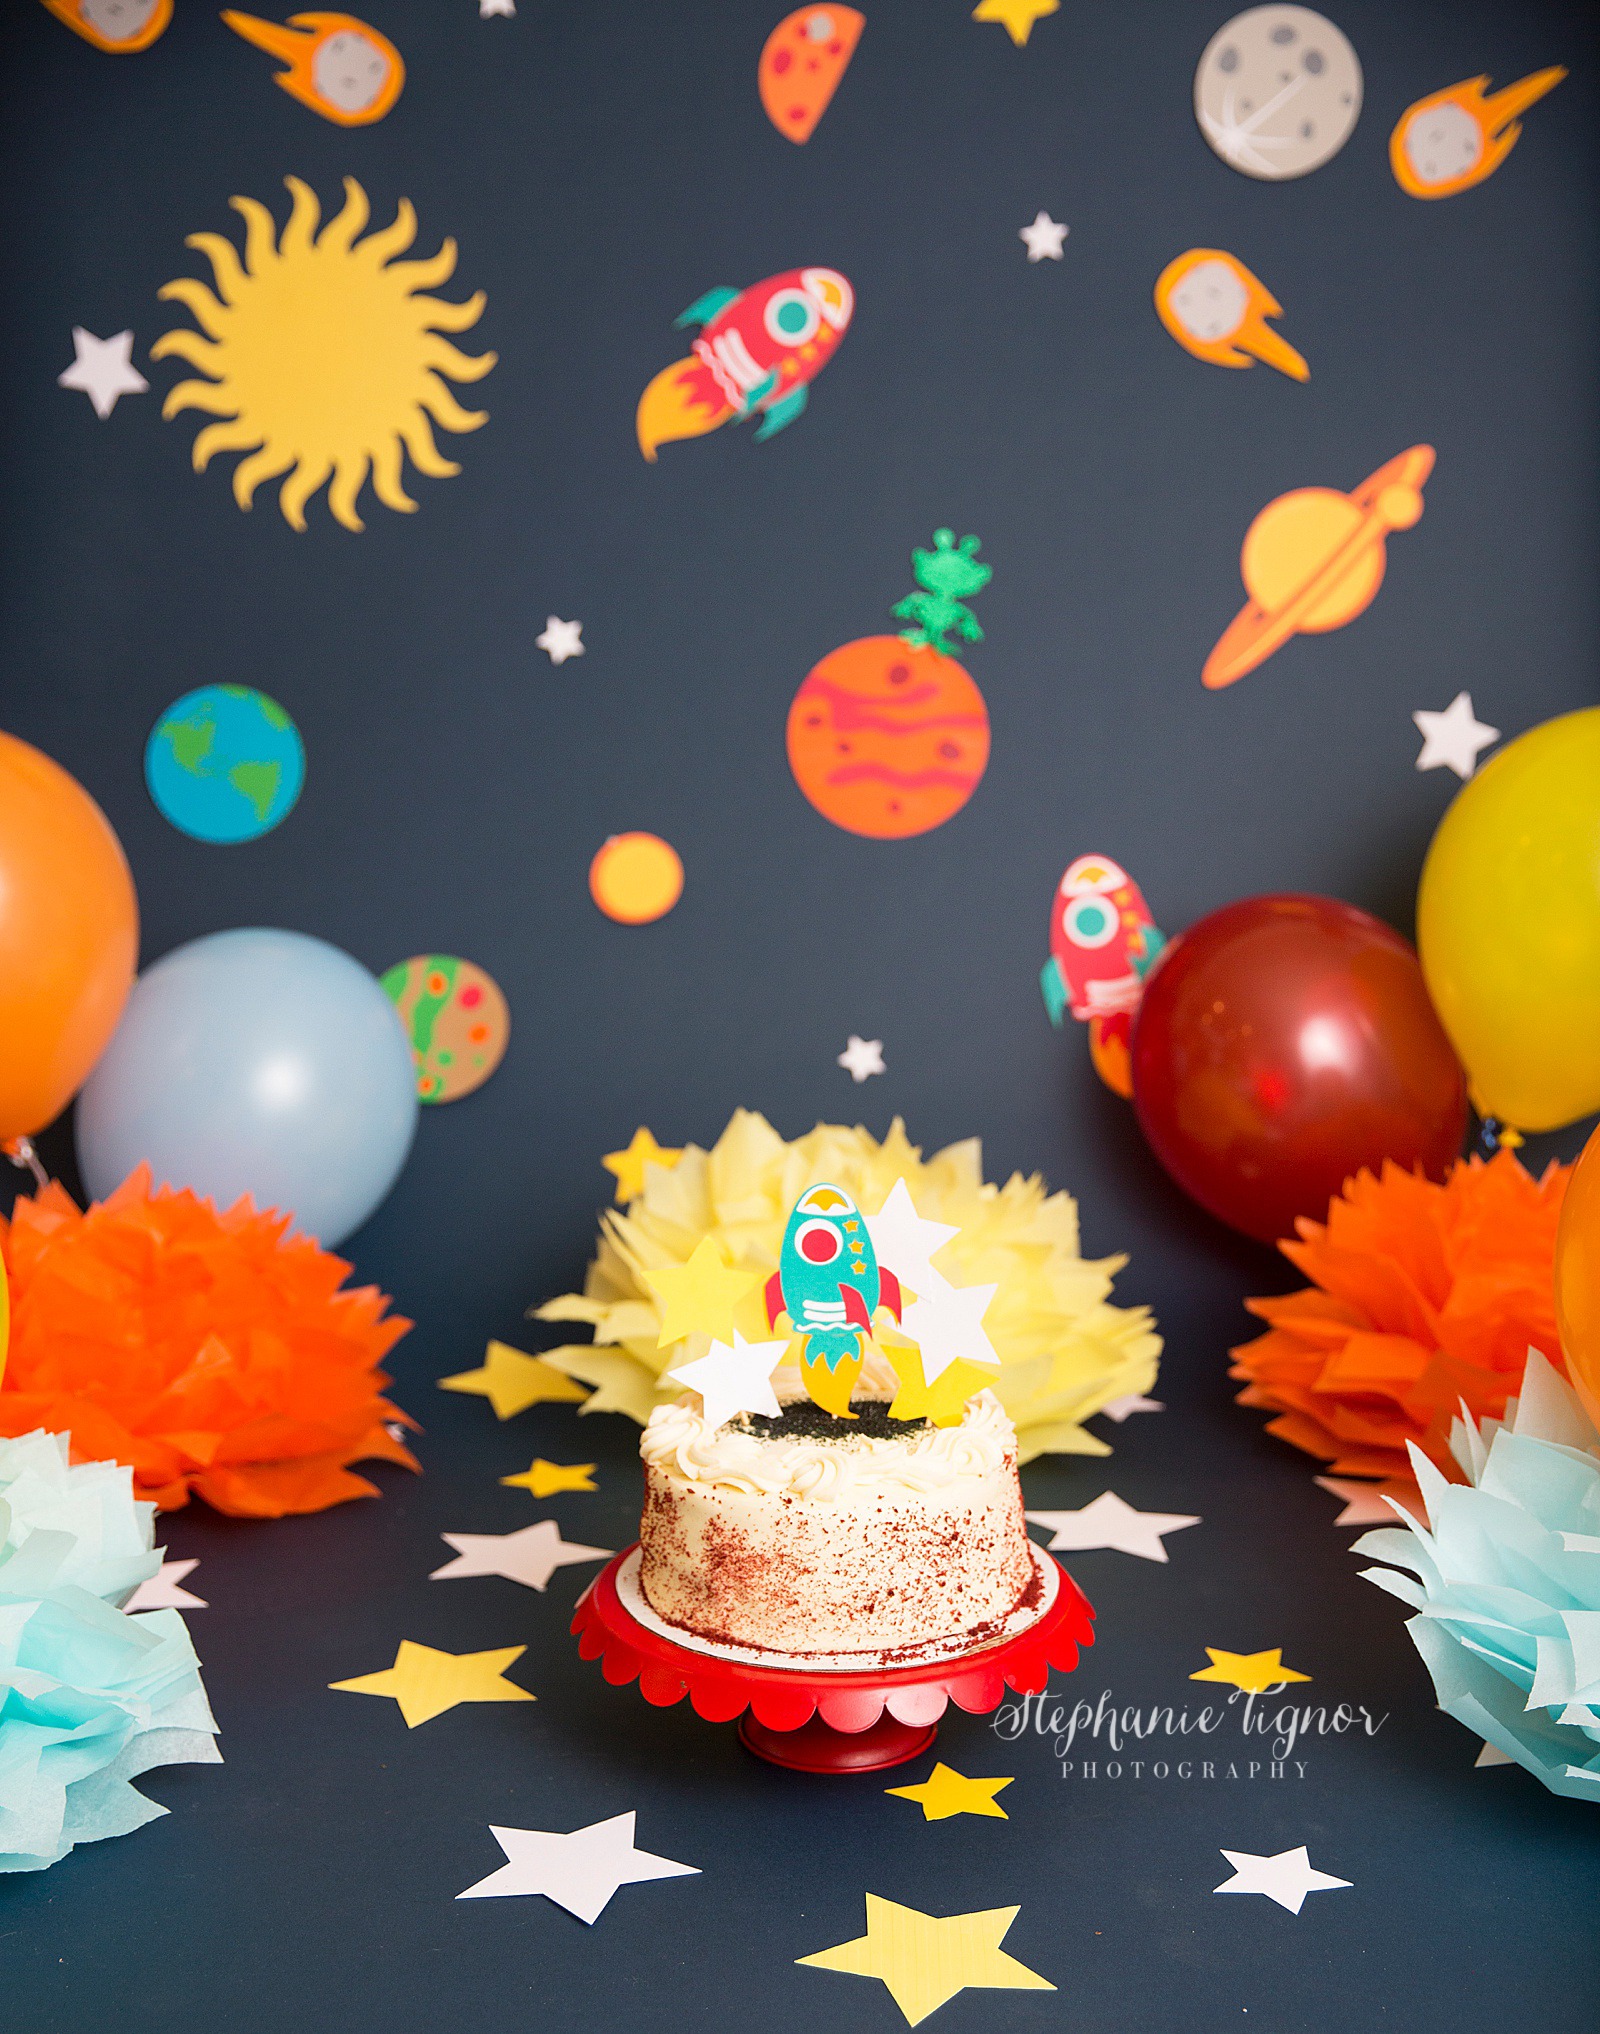 Stephanie Tignor Photography | Fredericksburg VA Cake Smash Photographer | Warrenton VA Cake Smash Photographer | Stafford VA Cake Smash Photographer | Cake Smash Photographer | Space Themed Cake Smash